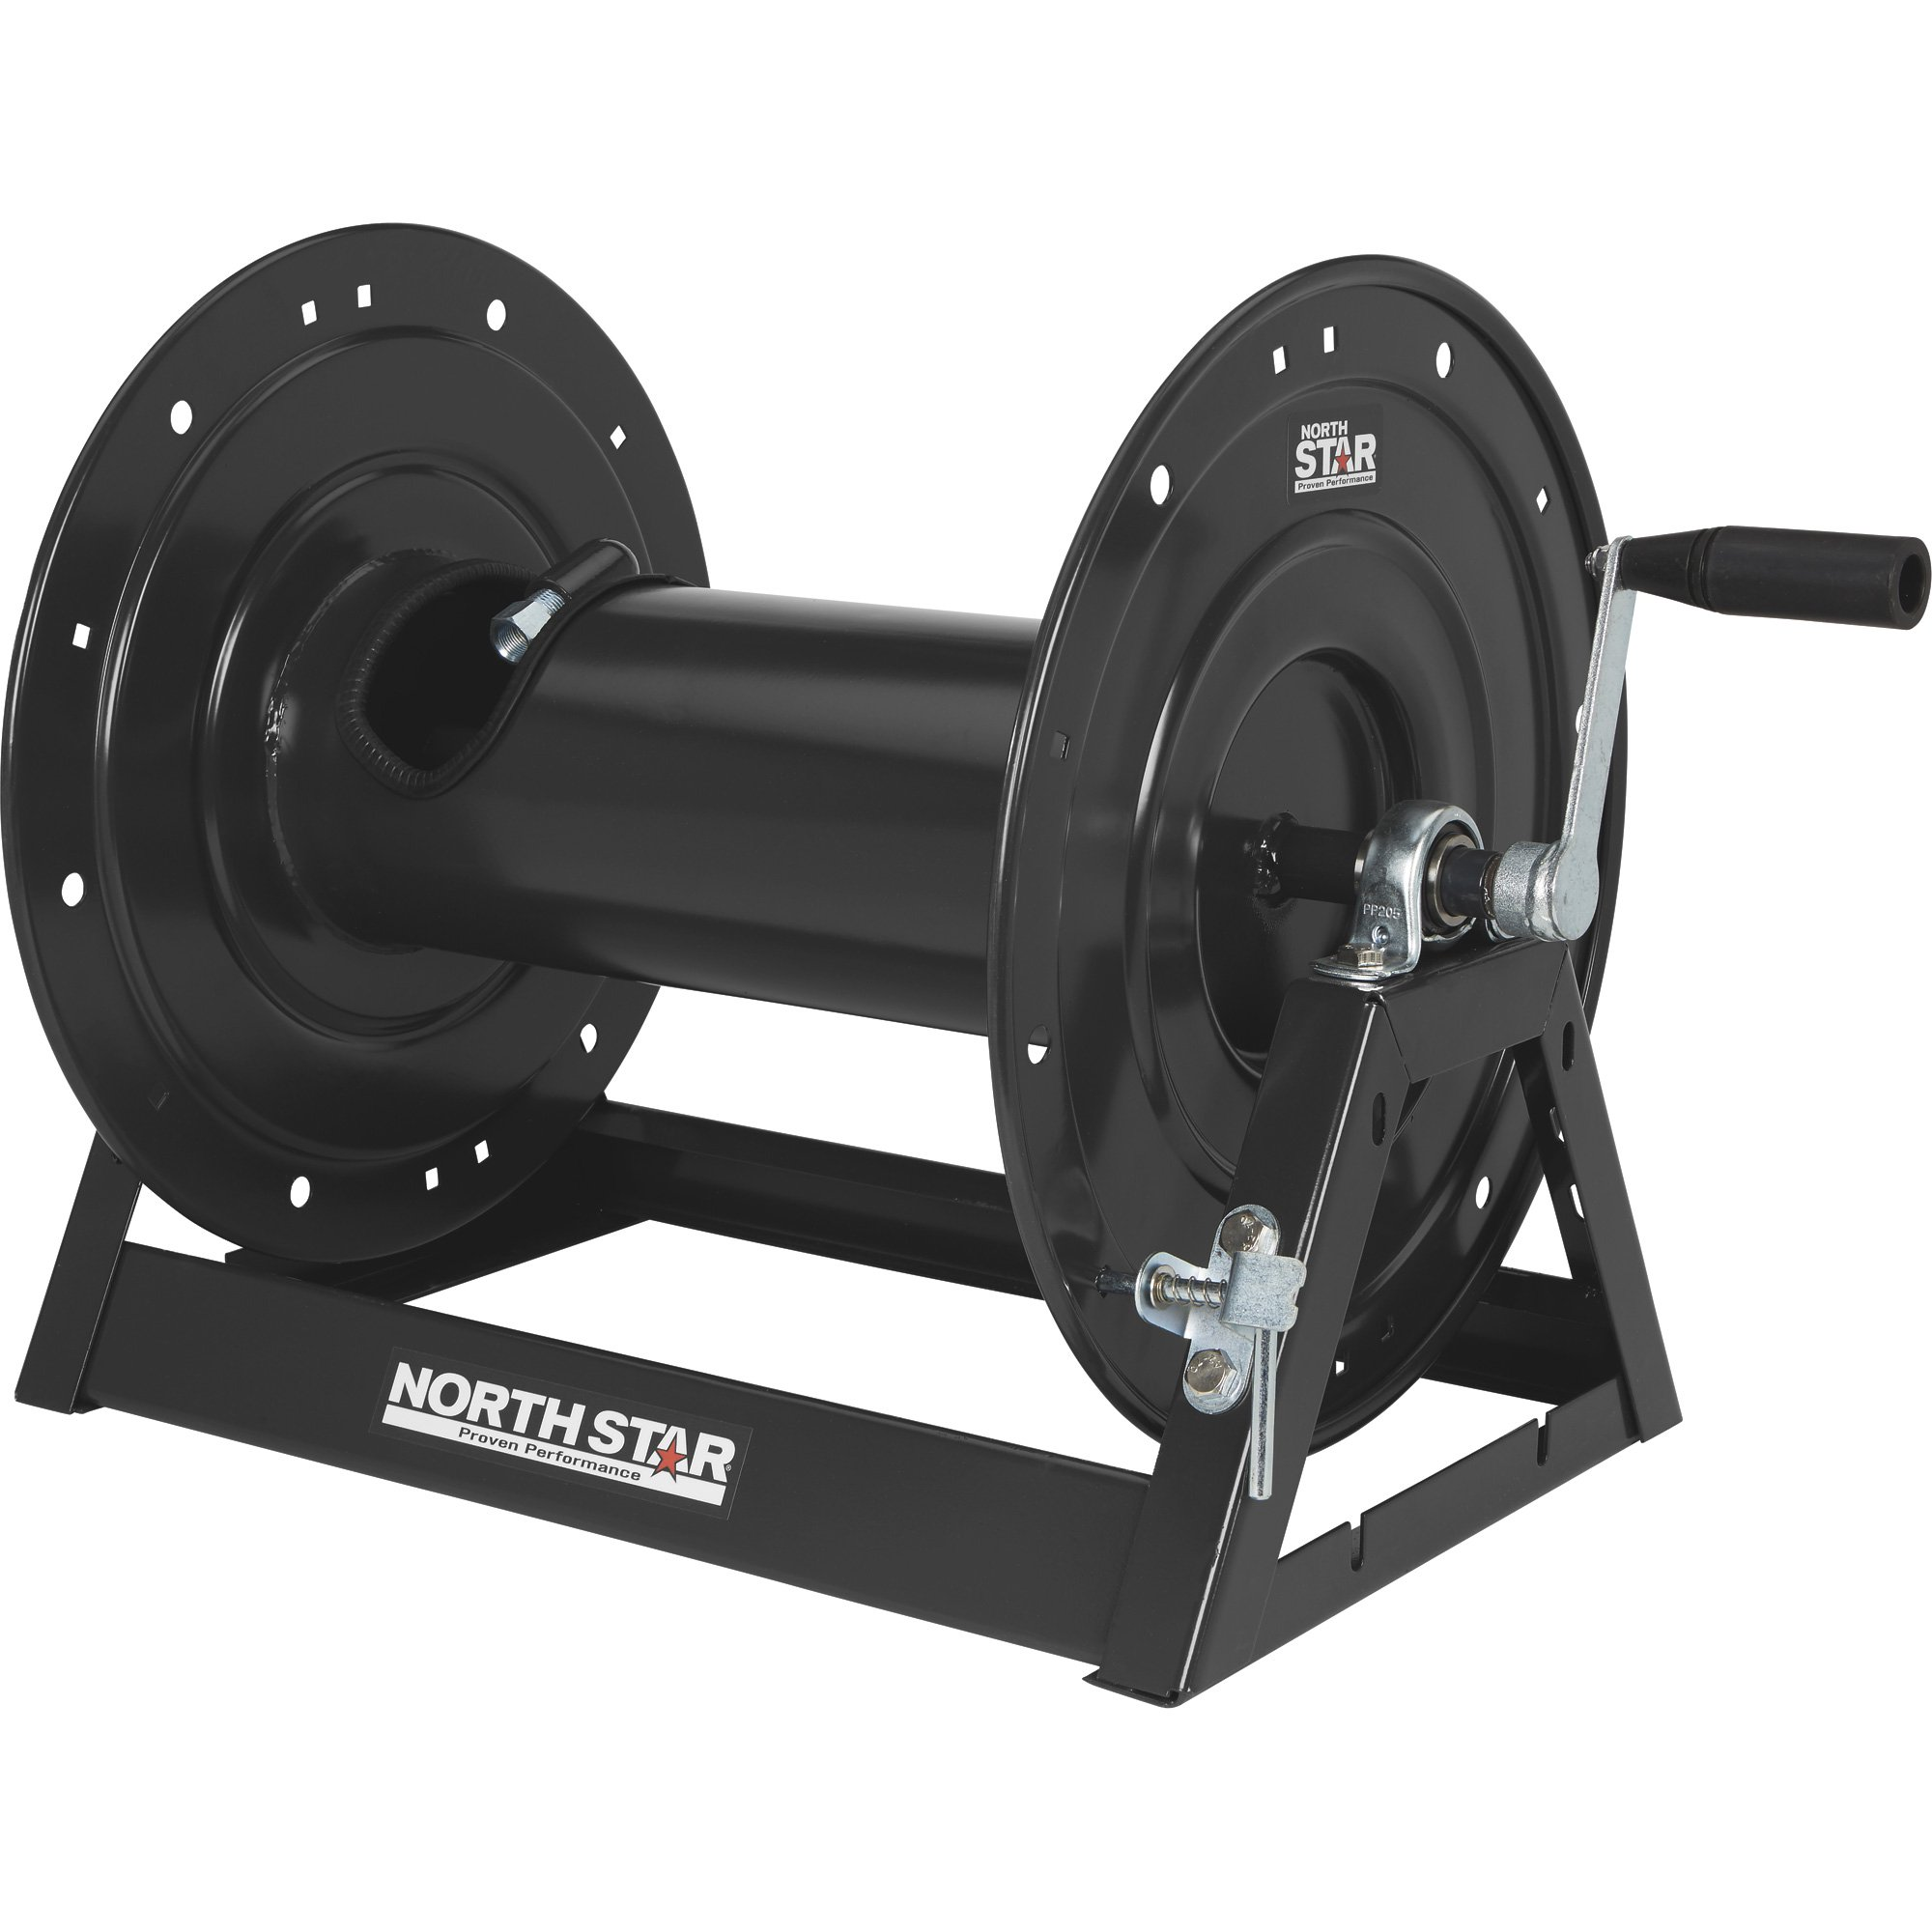 NorthStar 55793 Heavy-Duty A-Frame Hose Reel - 5000 PSI 450ft. Capacity